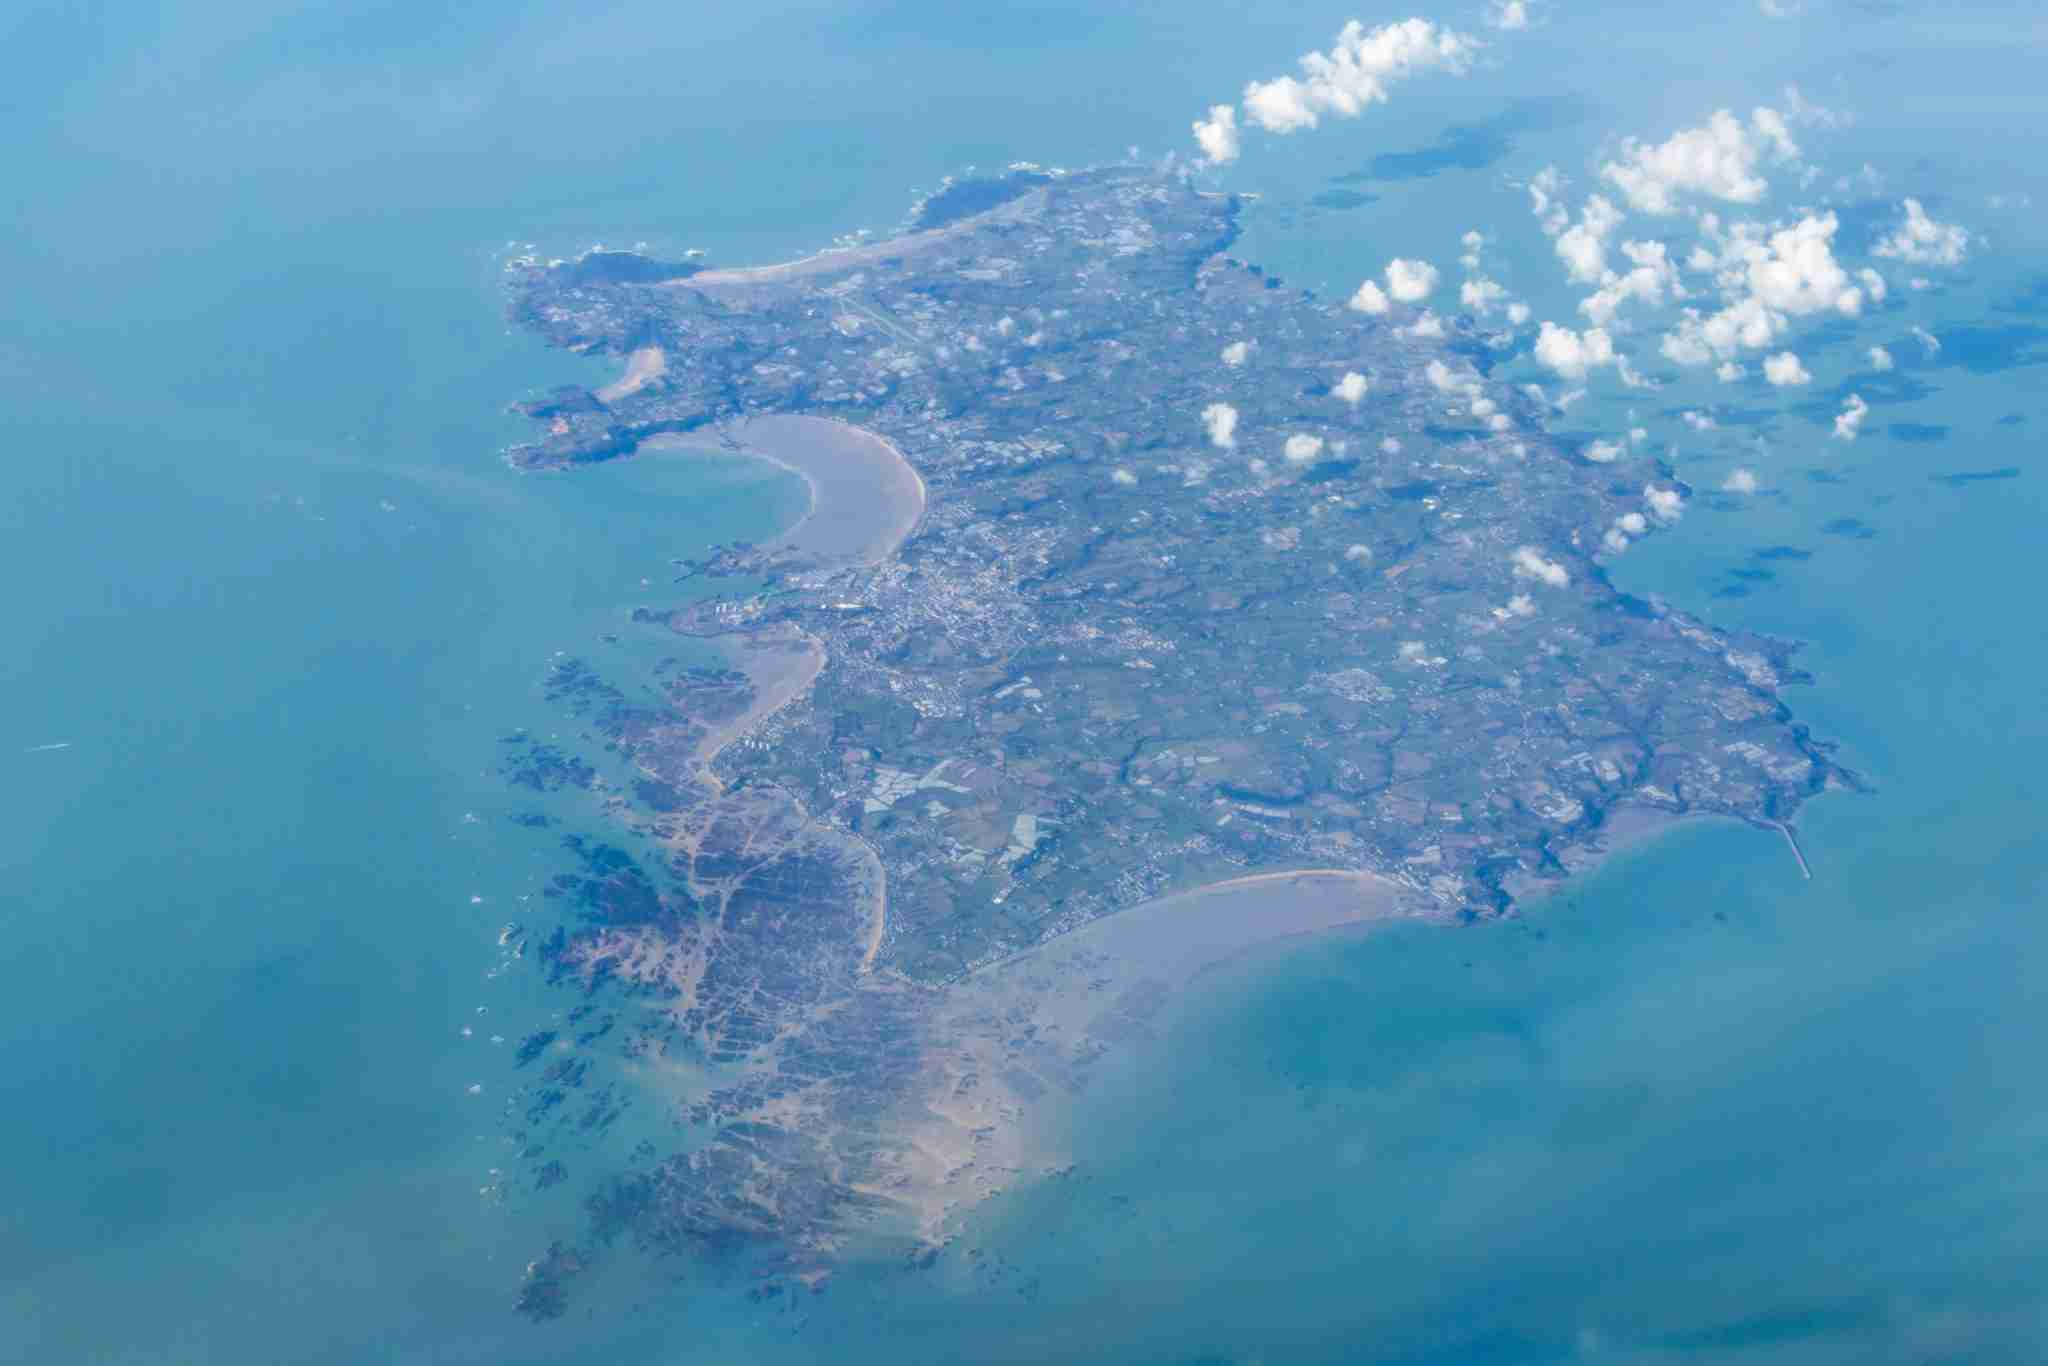 A photograph of the whole island of Jersey, taken from the flight deck of an airplane